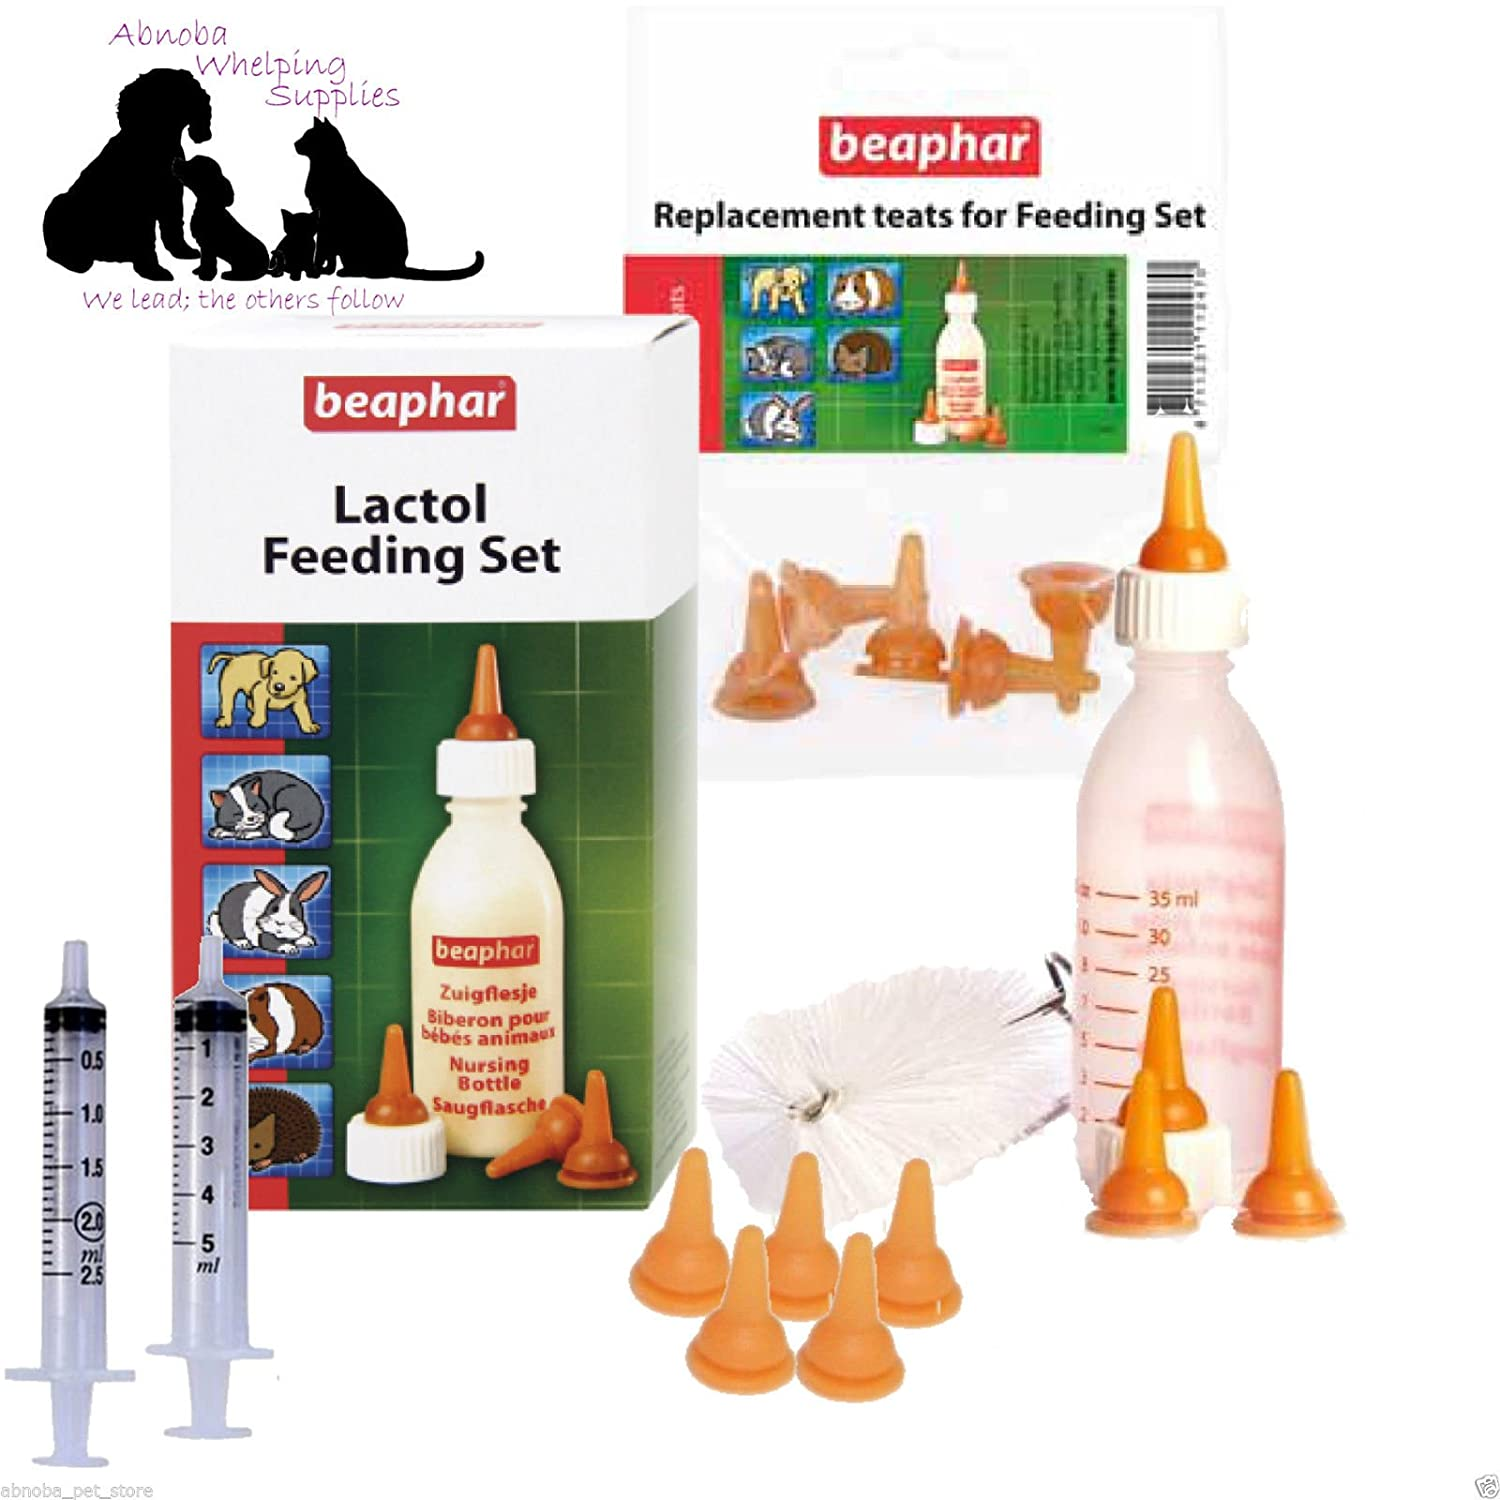 Beaphar Lactol Milk Bottle | 9 Teats | 2 Feed Syringes | Puppy & Kitten Whelping